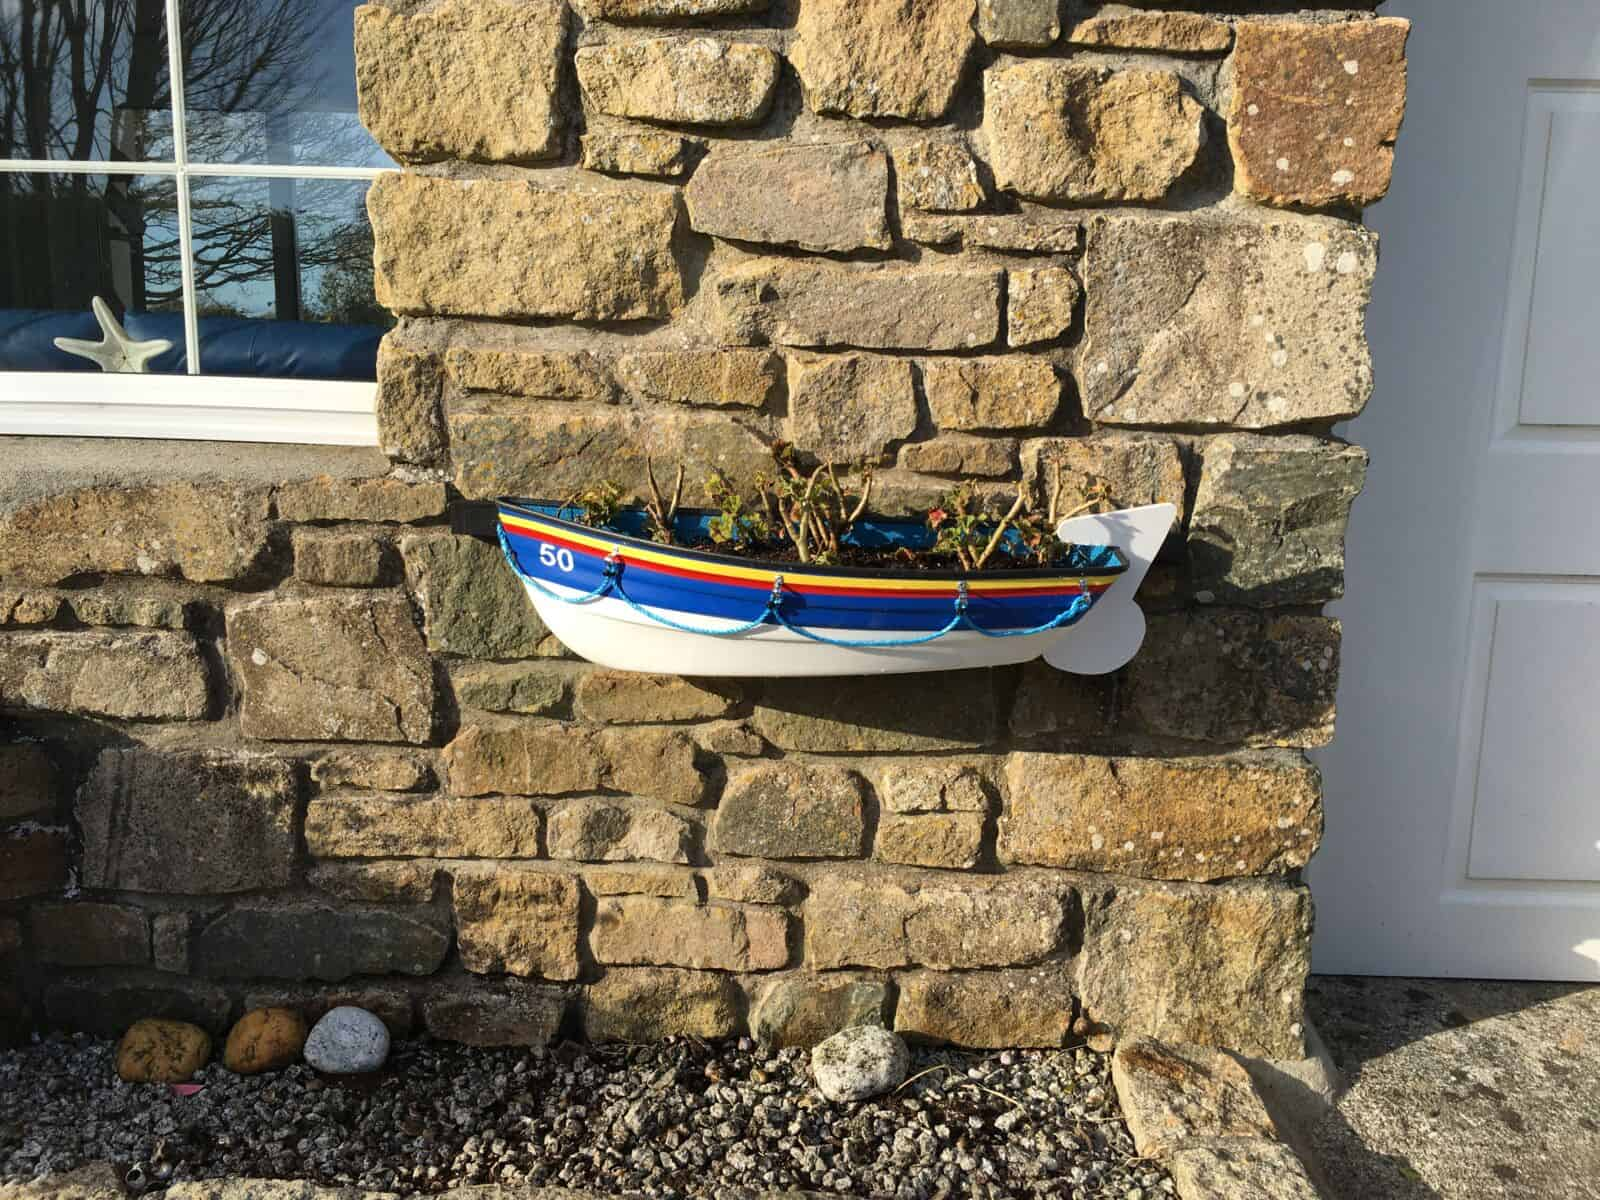 Lifeboat Boat Planter on station